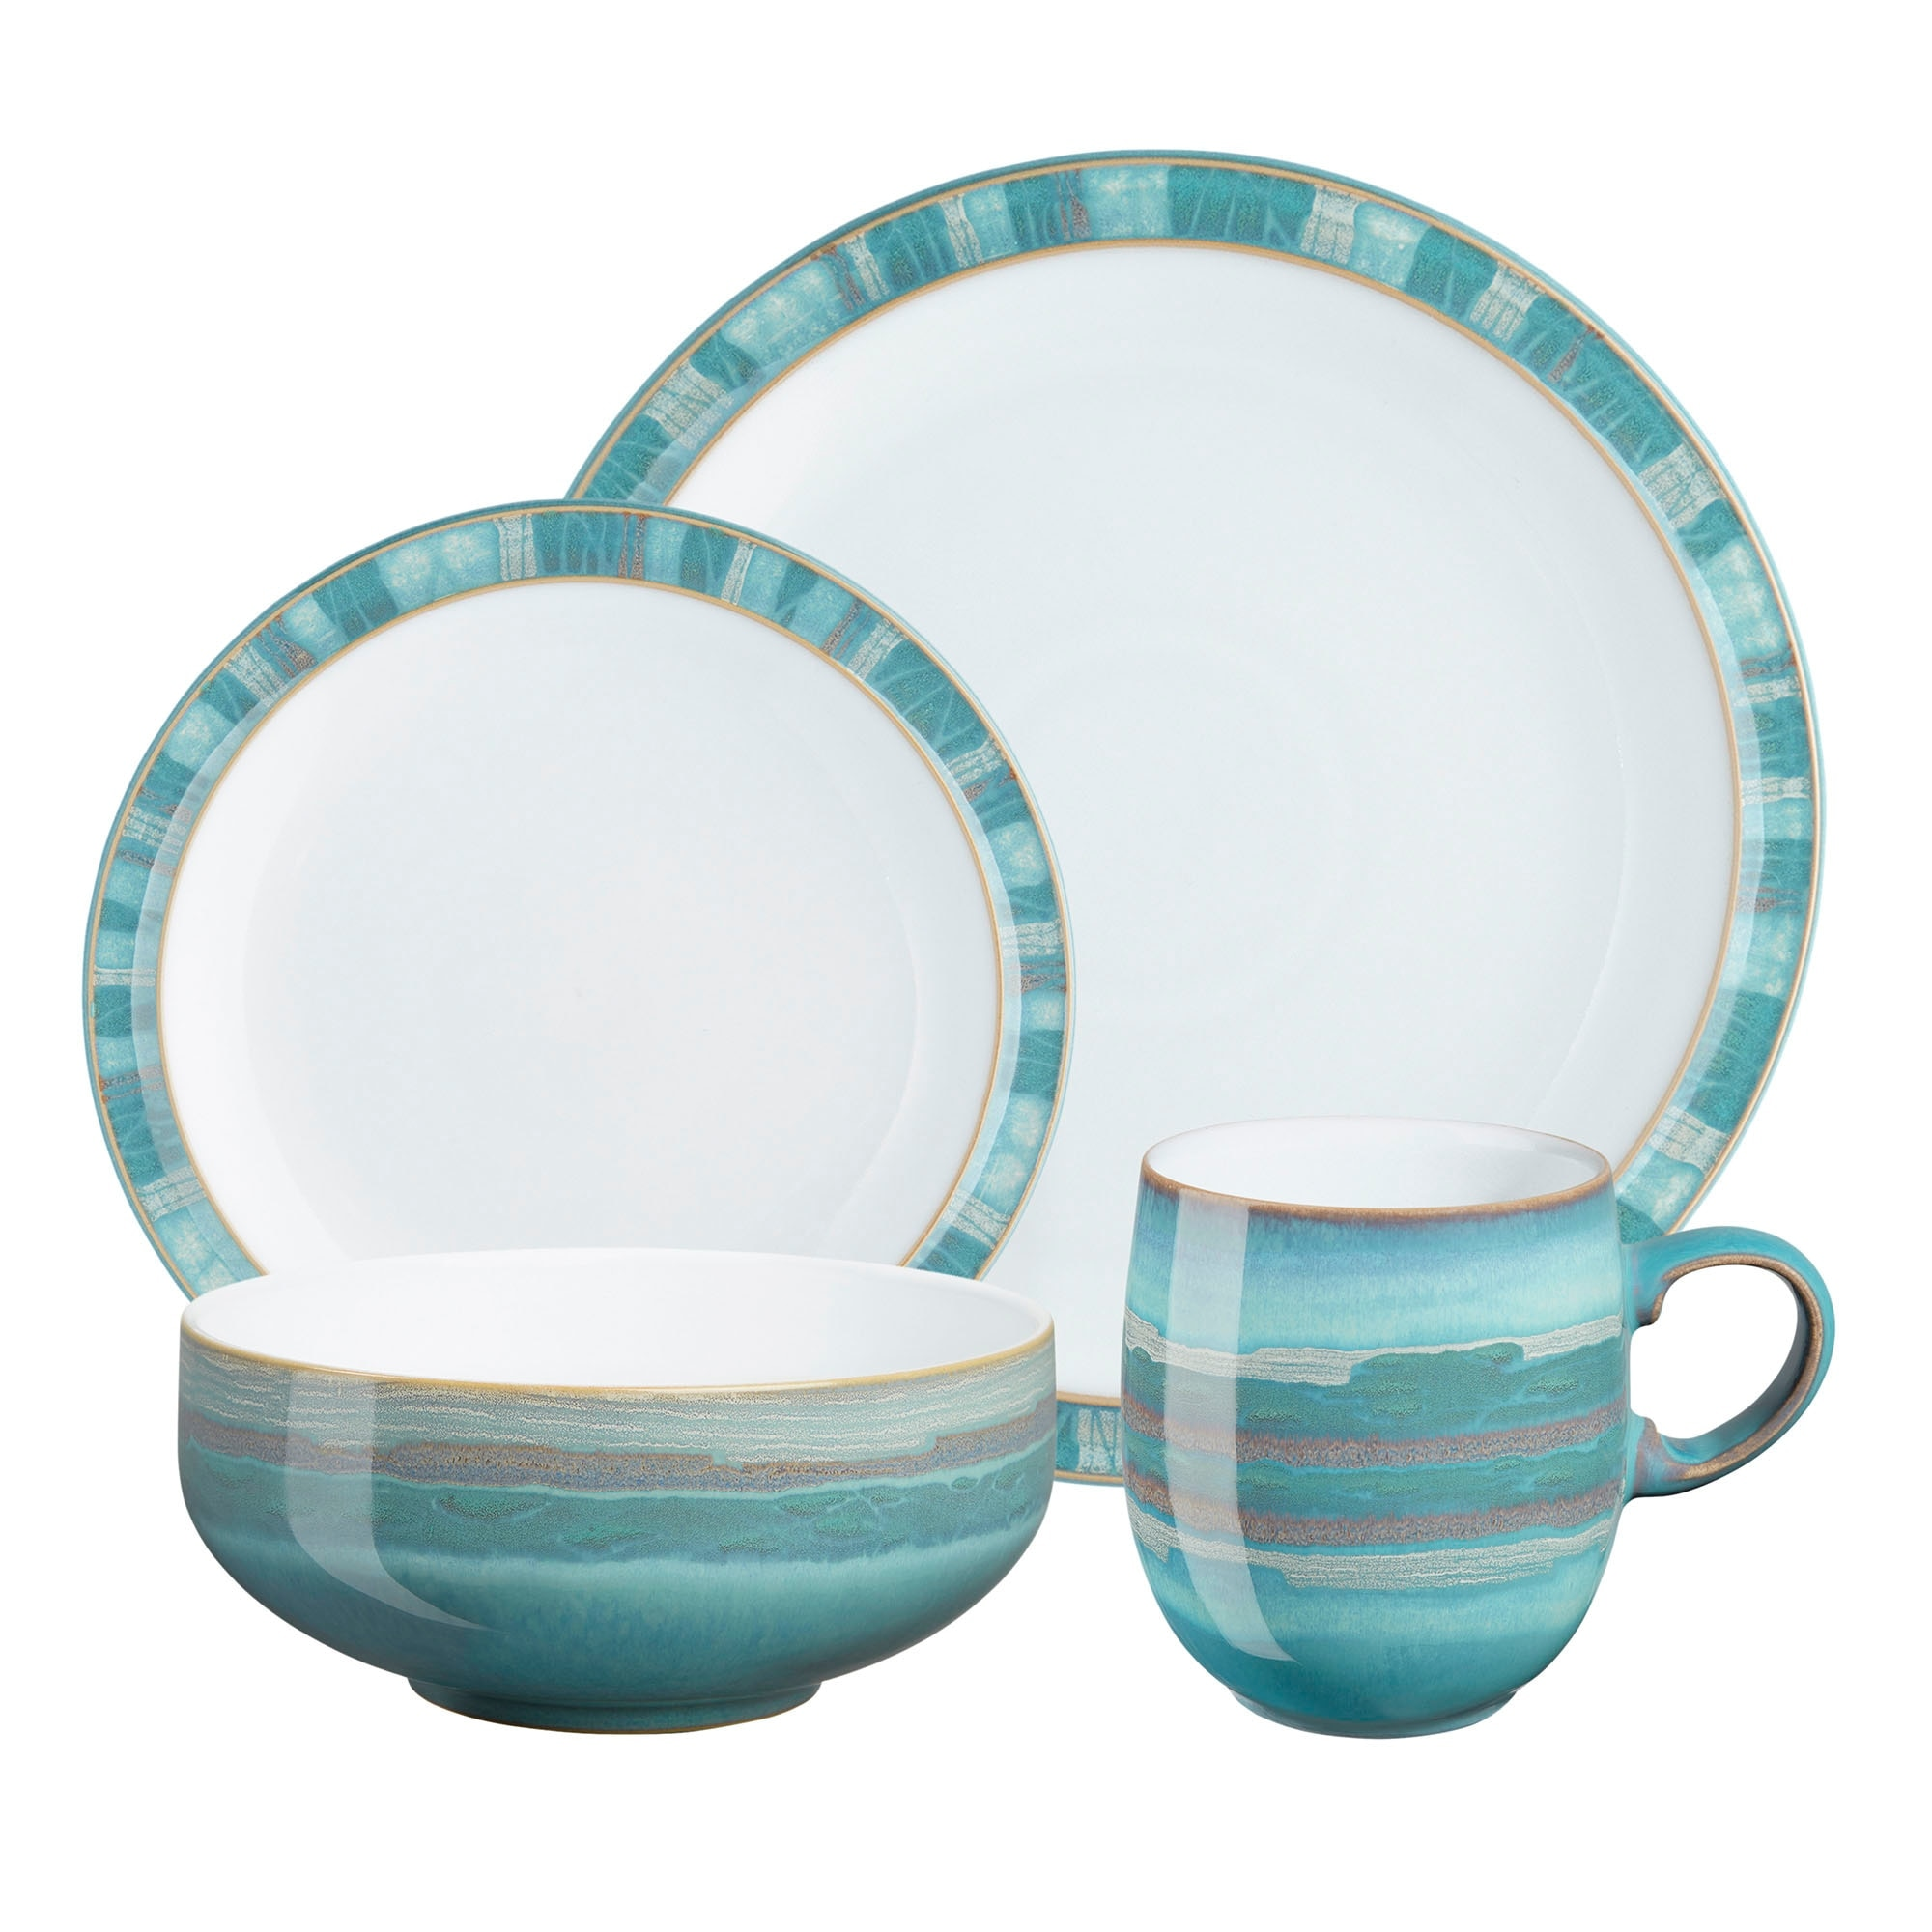 Compare prices for Denby Azure Coast 16 Piece Tableware Set